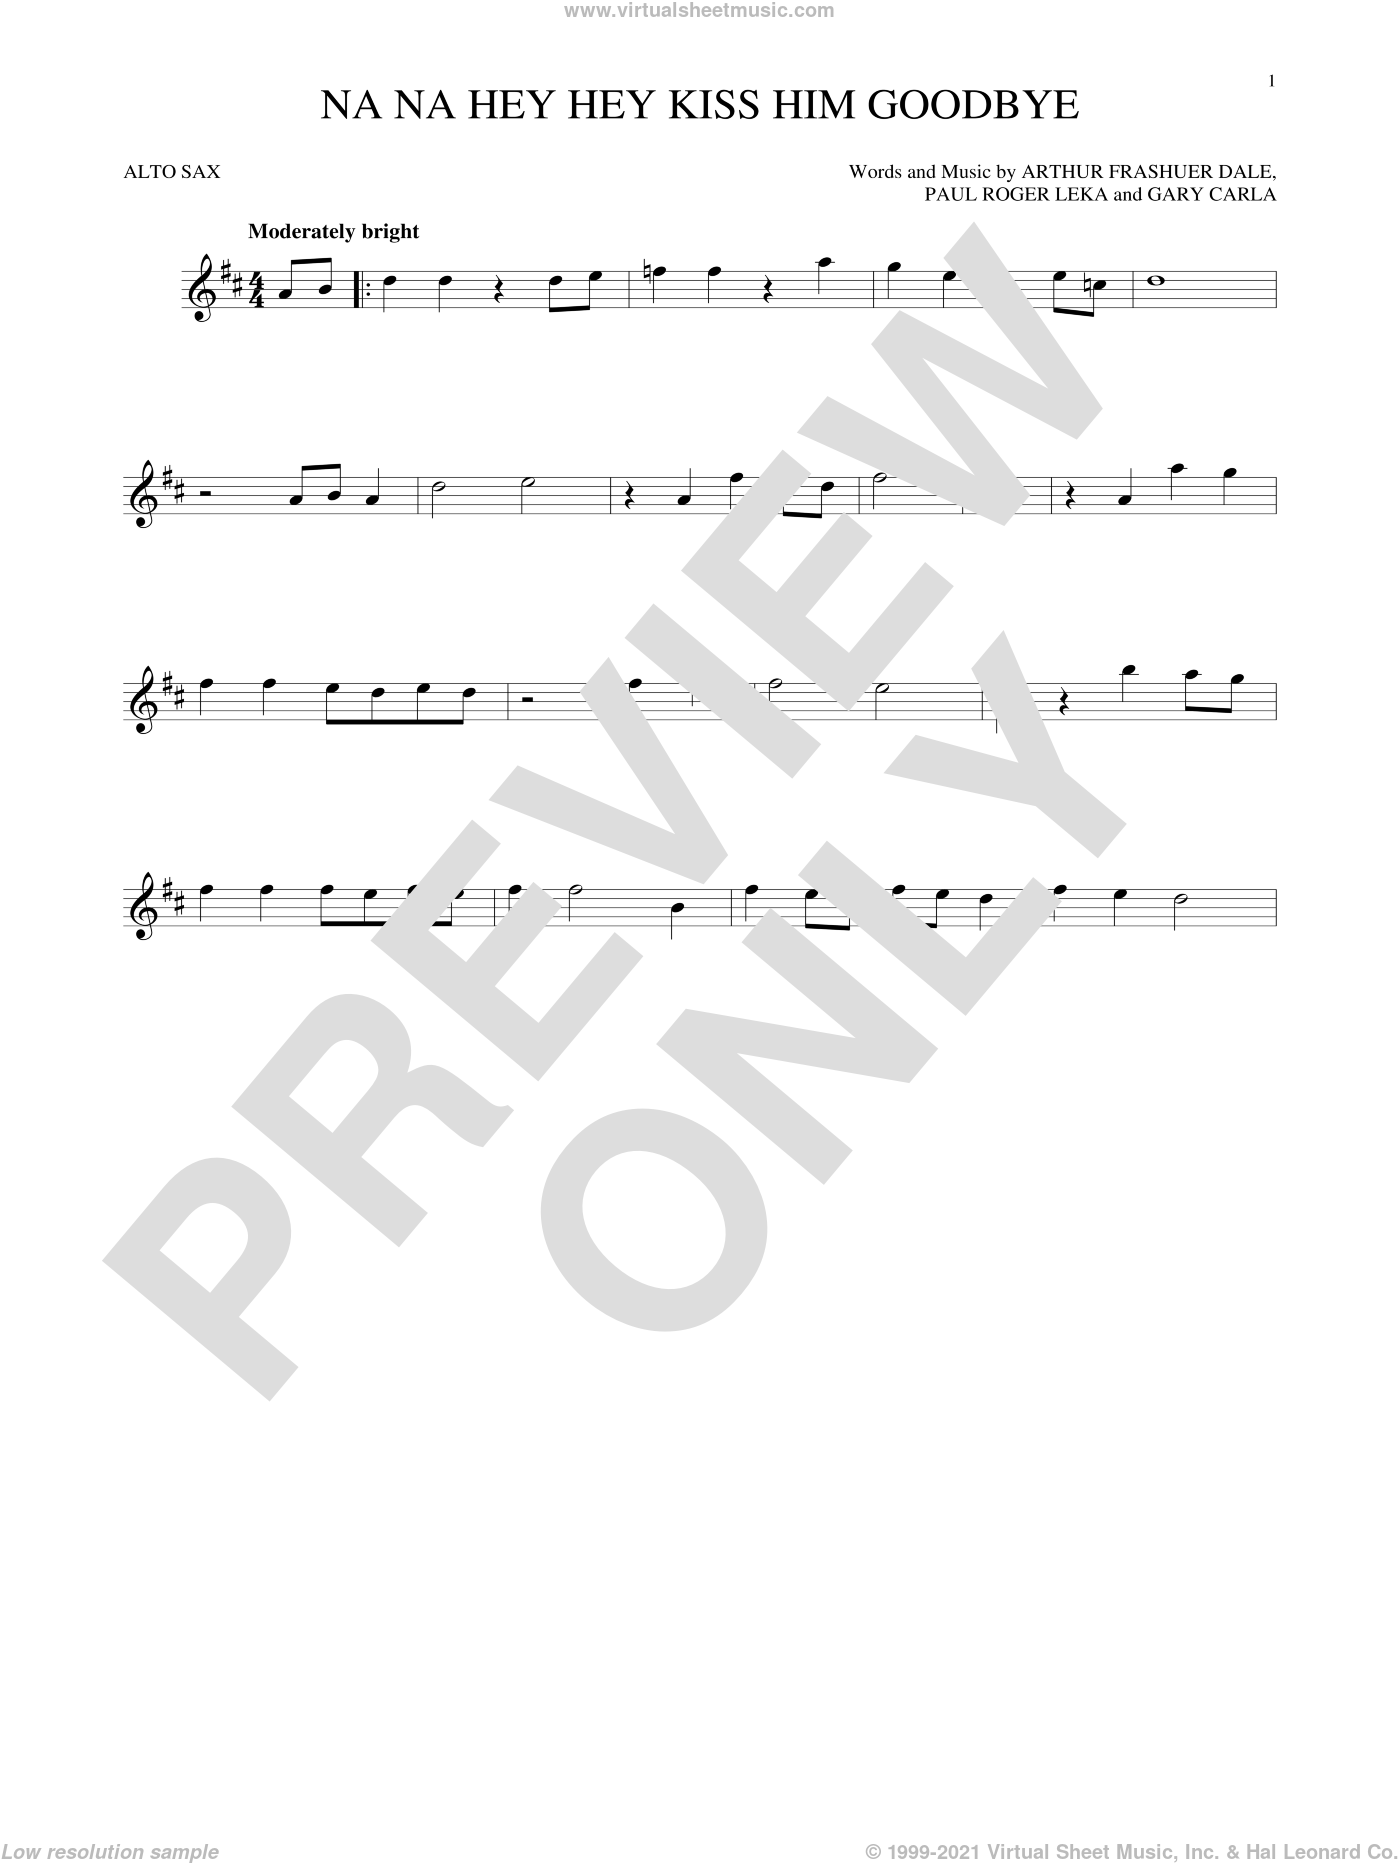 Na Na Hey Hey Kiss Him Goodbye sheet music for alto saxophone solo by Paul Leka, Steam, Dale Frashuer and Gary De Carlo. Score Image Preview.